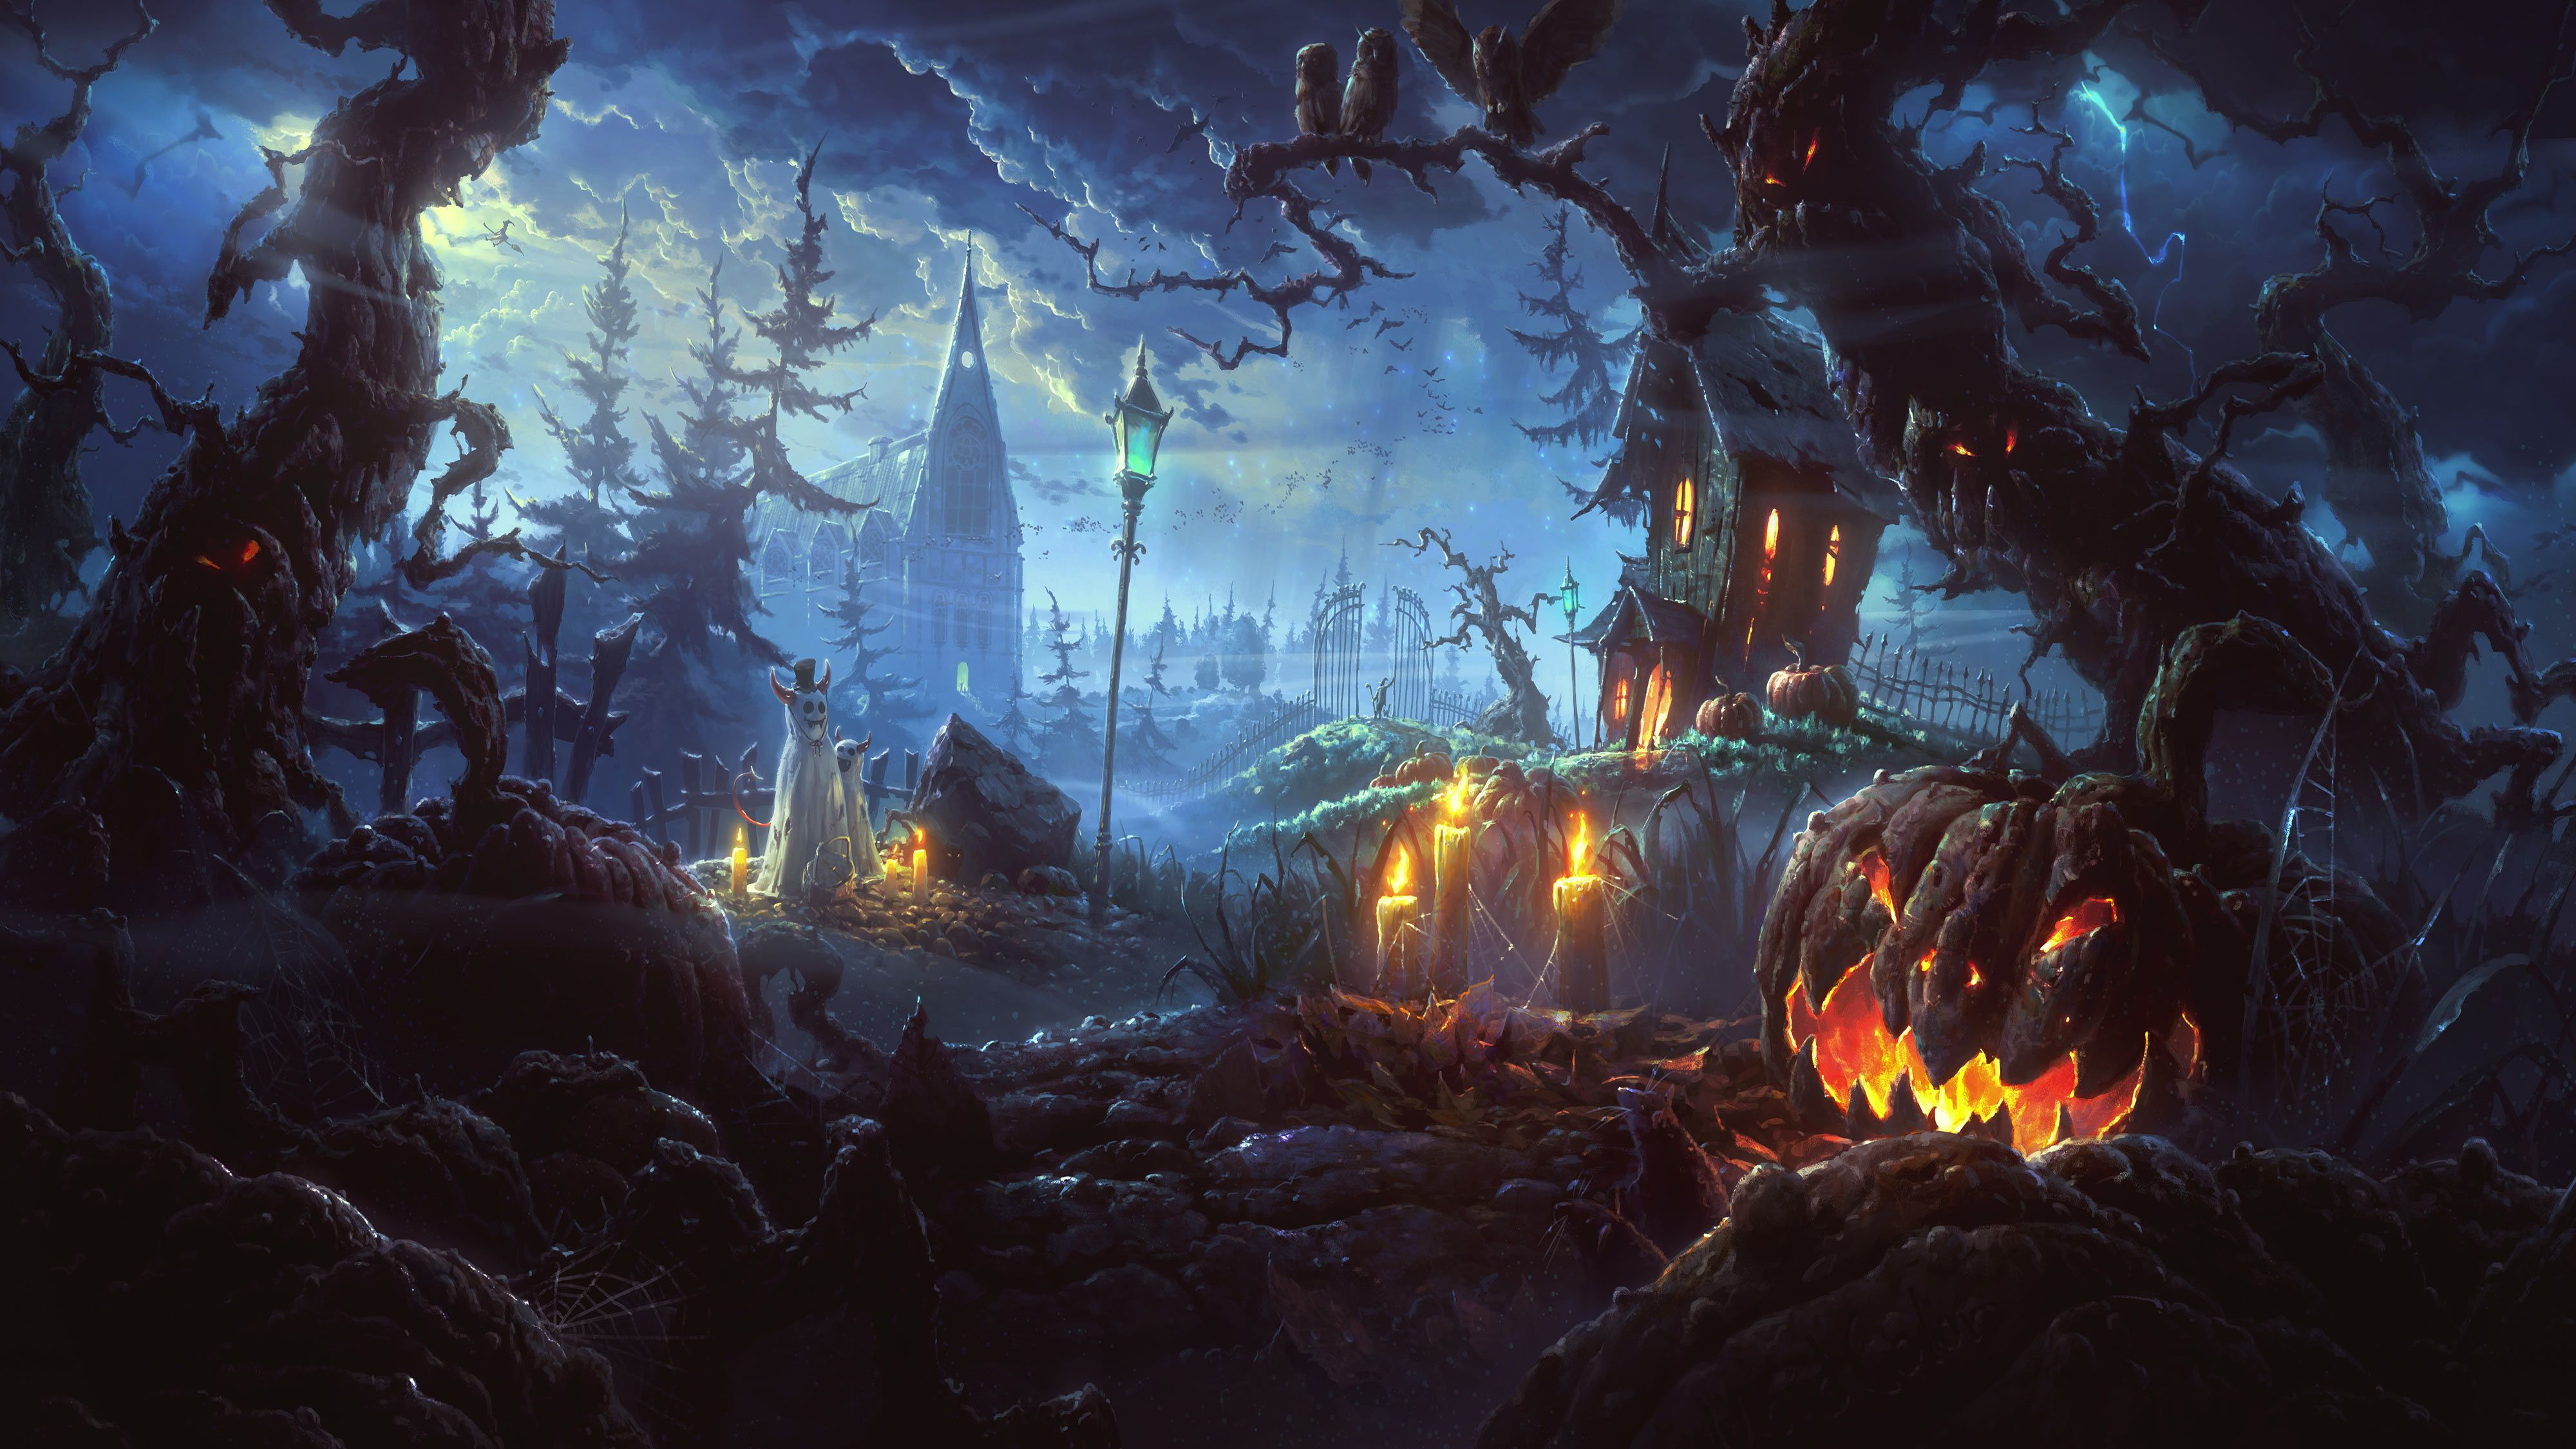 Halloween wallpapers computer desktop hd wallpapers 4000x2250